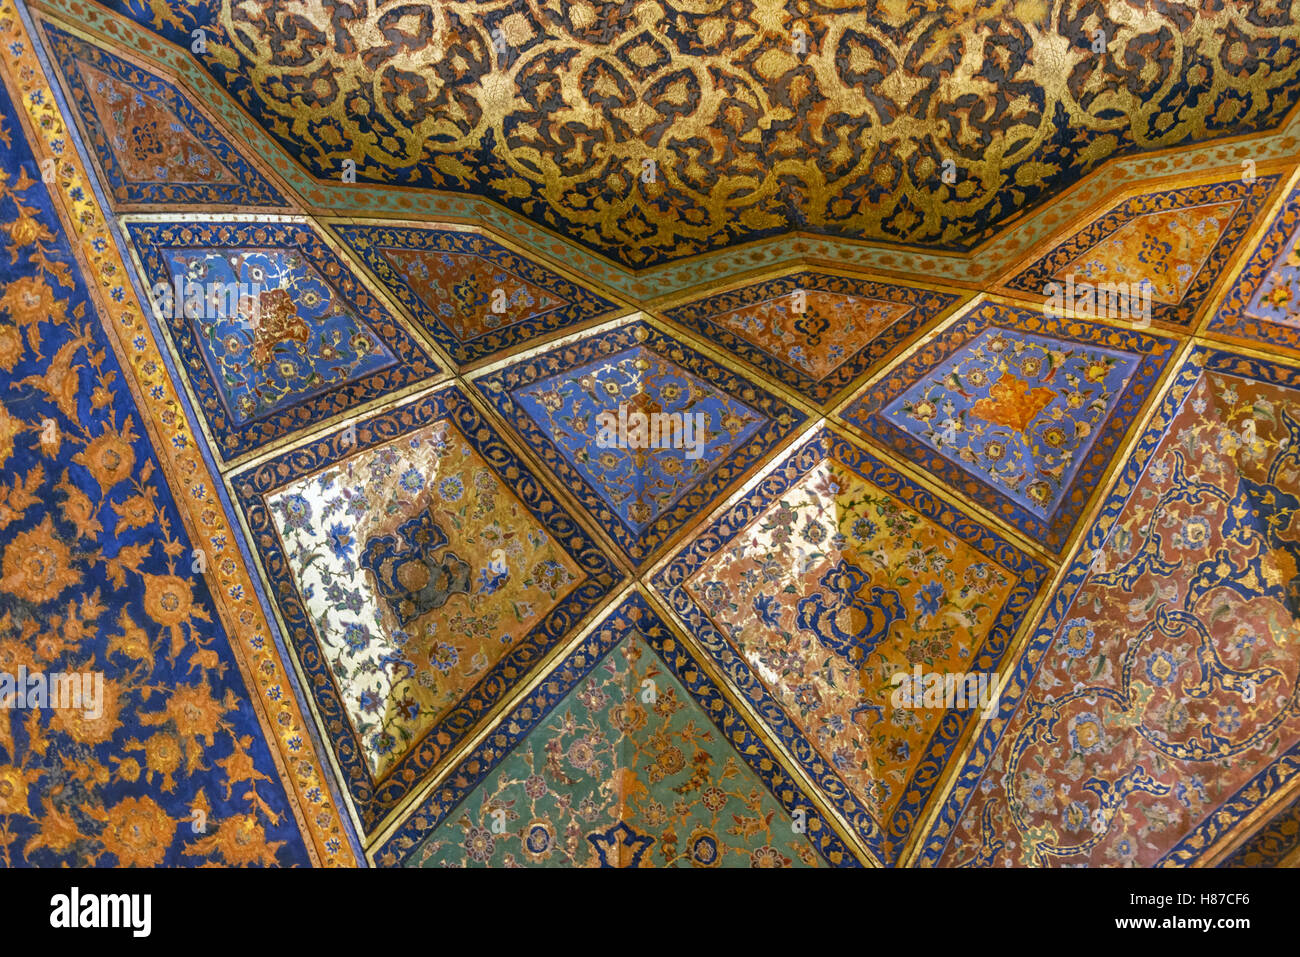 Colorful art work of forty columns palace in Isfahan Iran - Stock Image